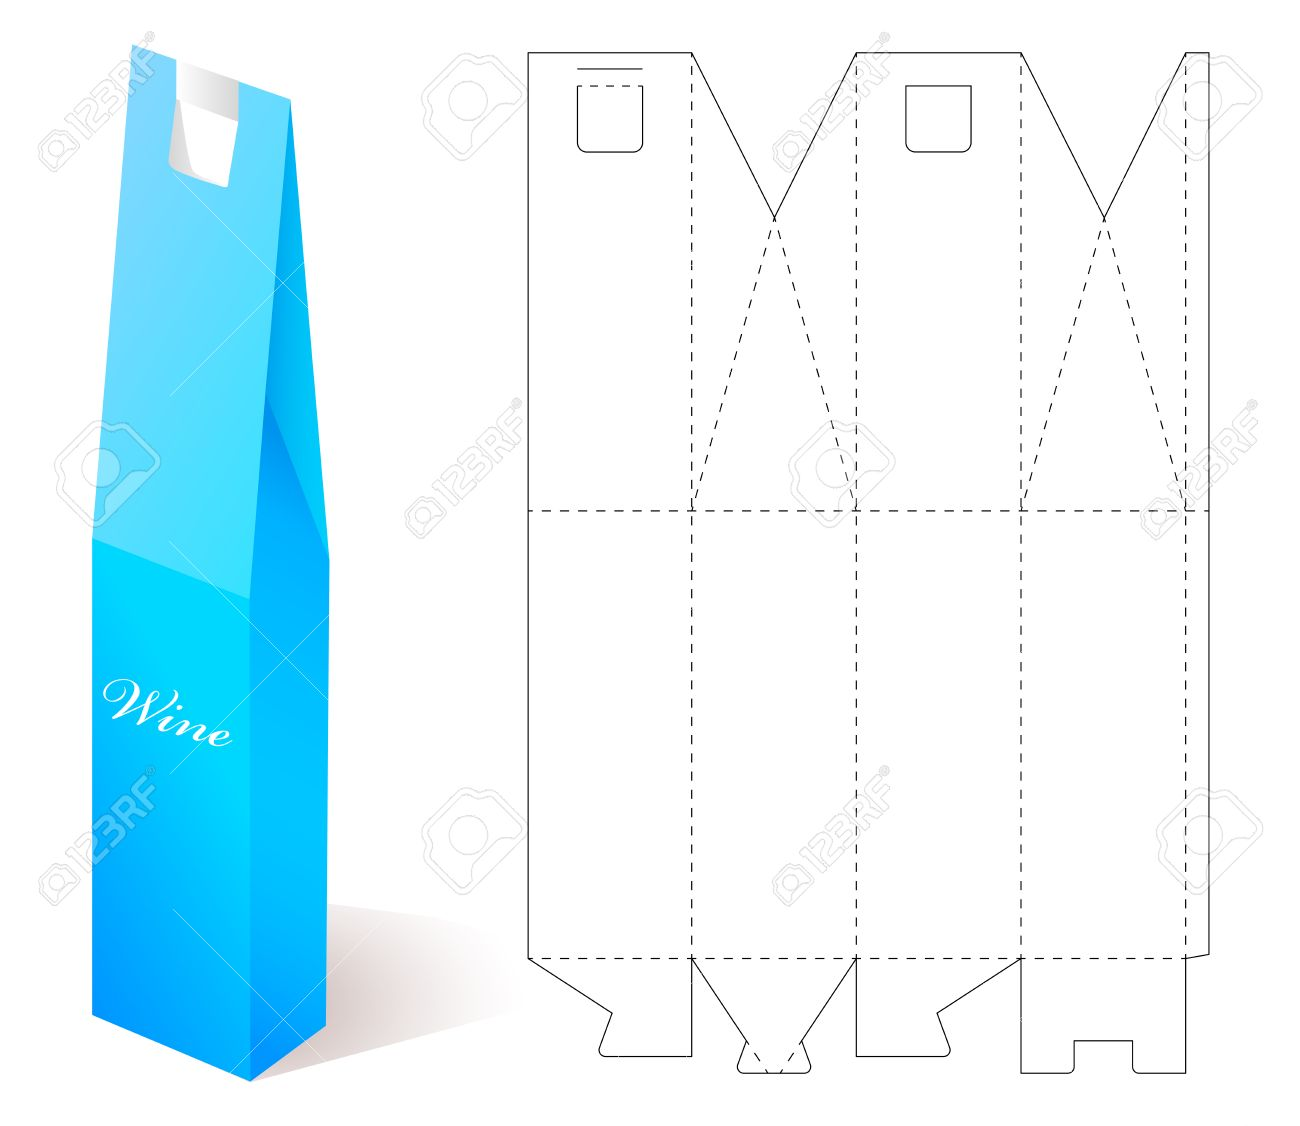 Wine paper box with blueprint template vector wine bottle box vector wine paper box with blueprint template vector wine bottle box illustration of gift craft box for designlding package vine bottle template malvernweather Choice Image